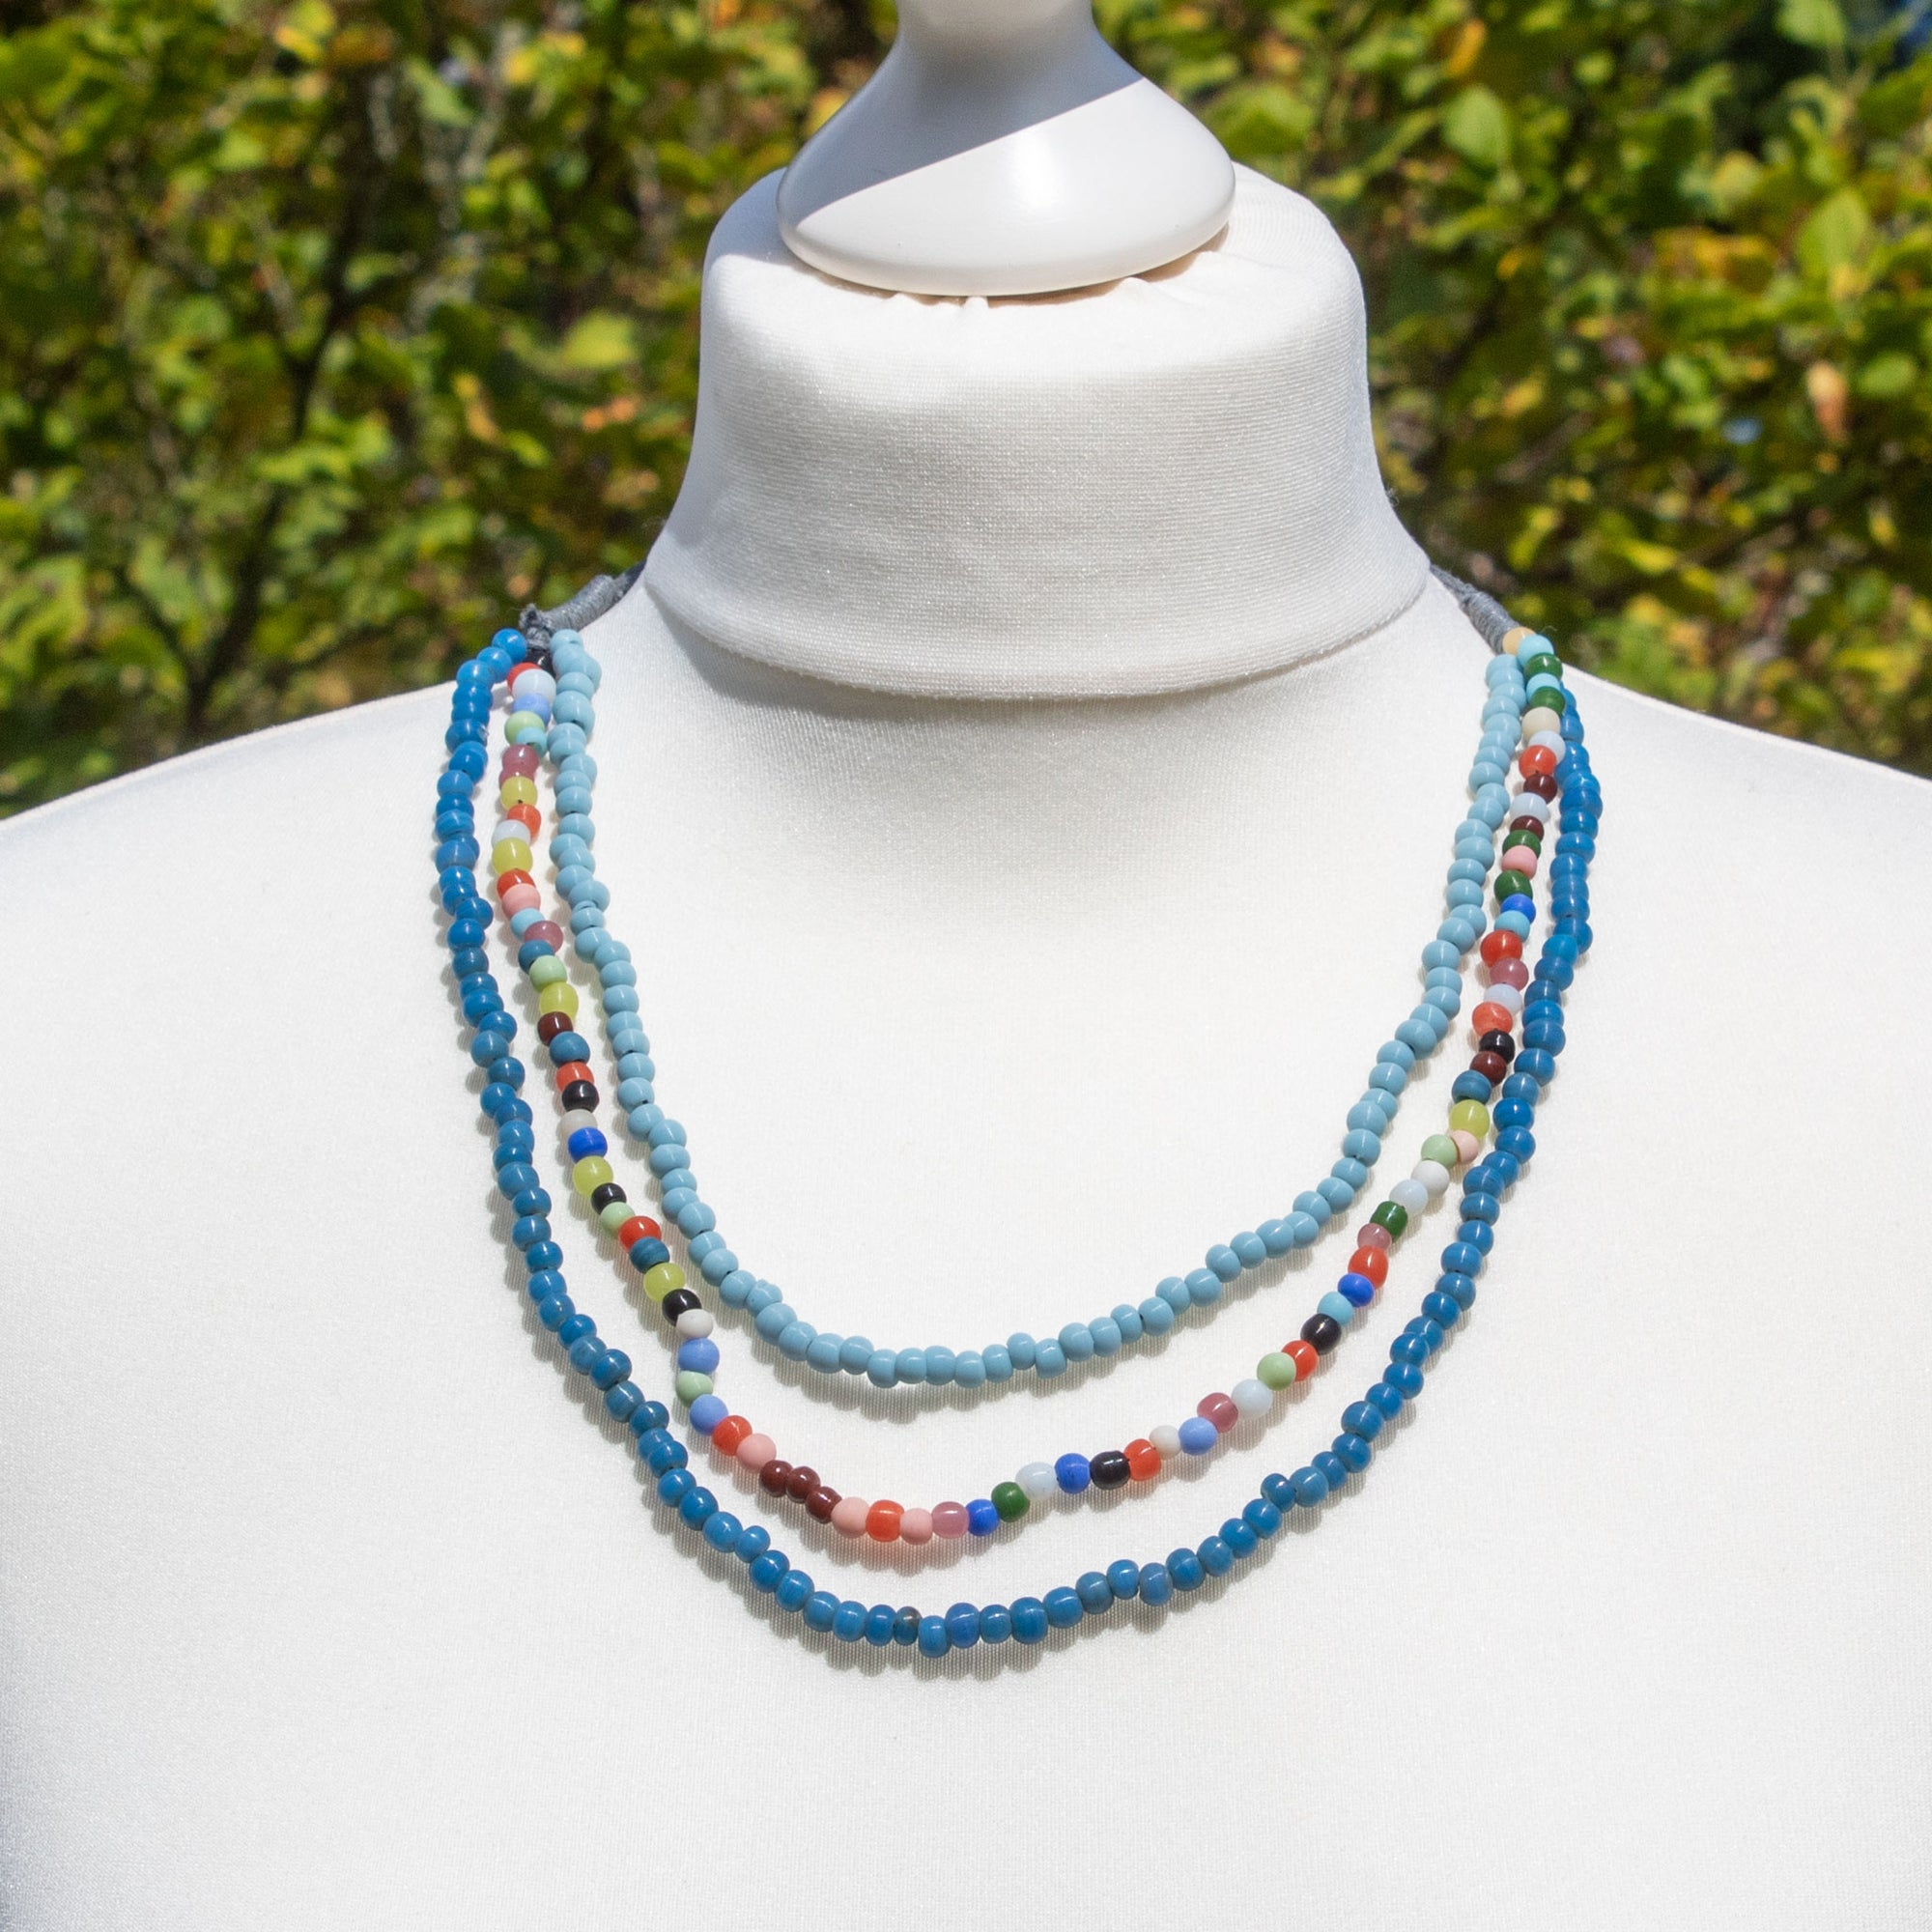 Blue & Multicolour Glass Bead Necklace | Necklace - The Naughty Shrew